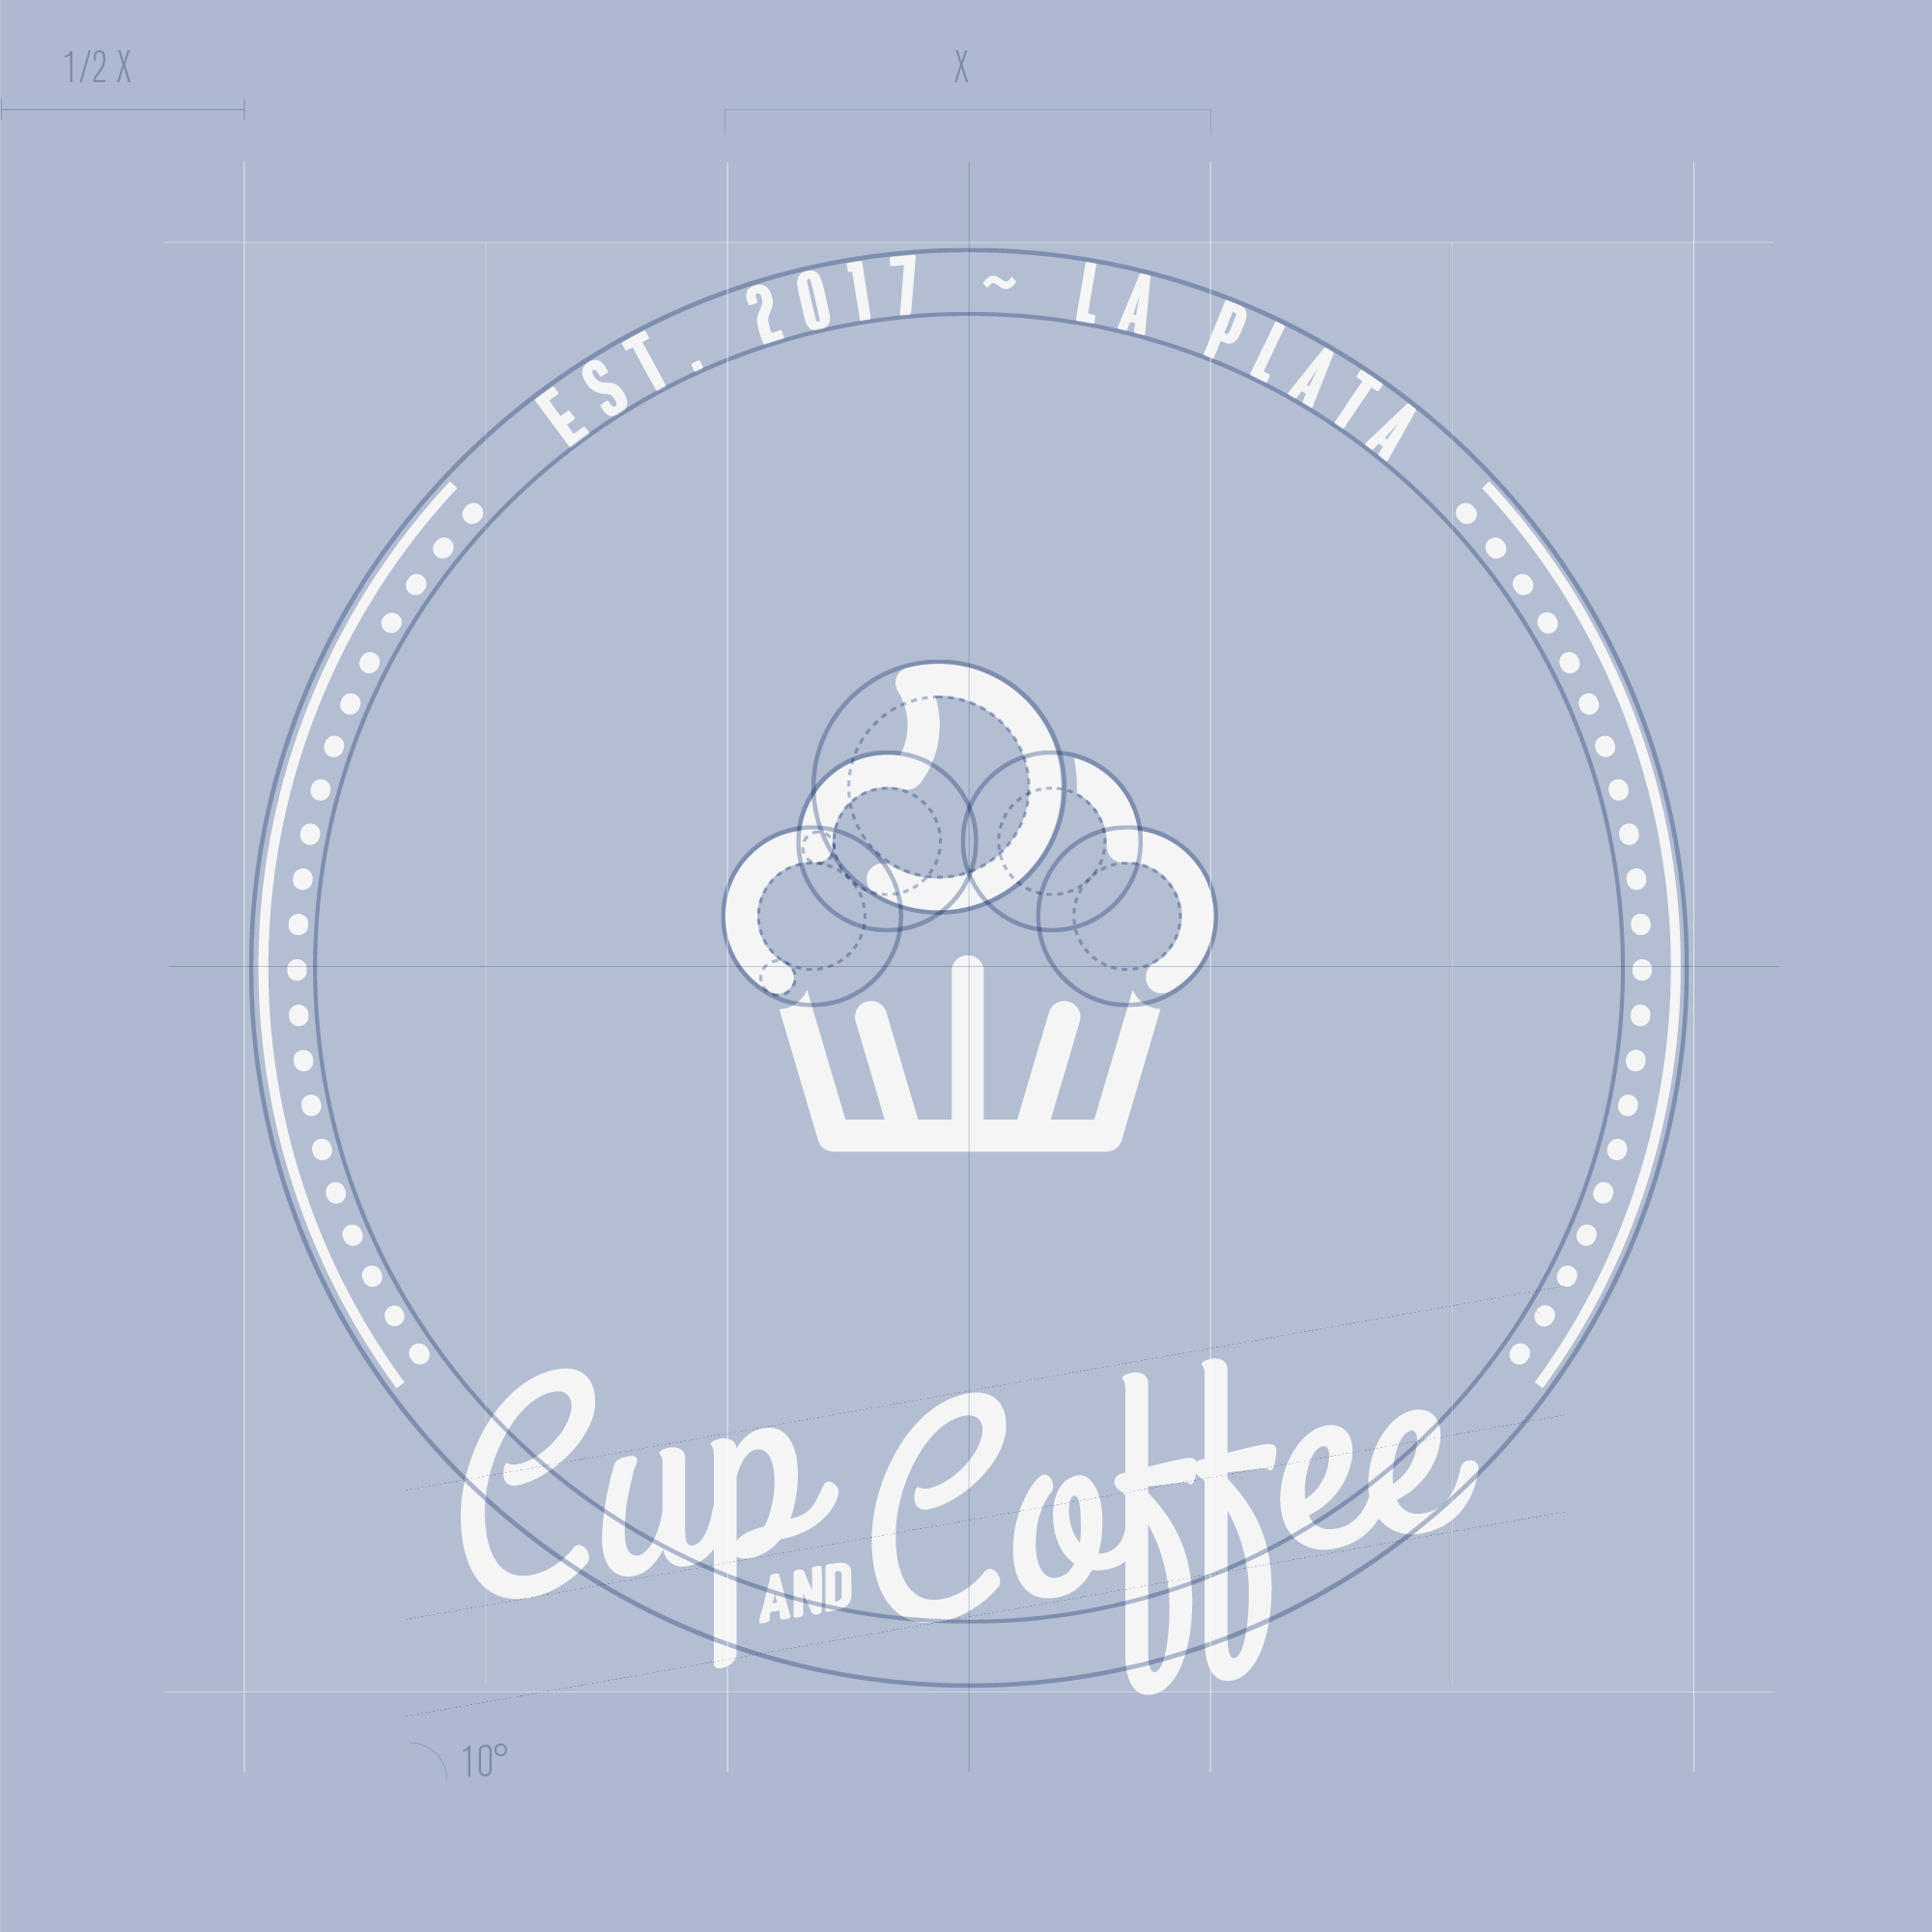 cup-and-coffee-logo